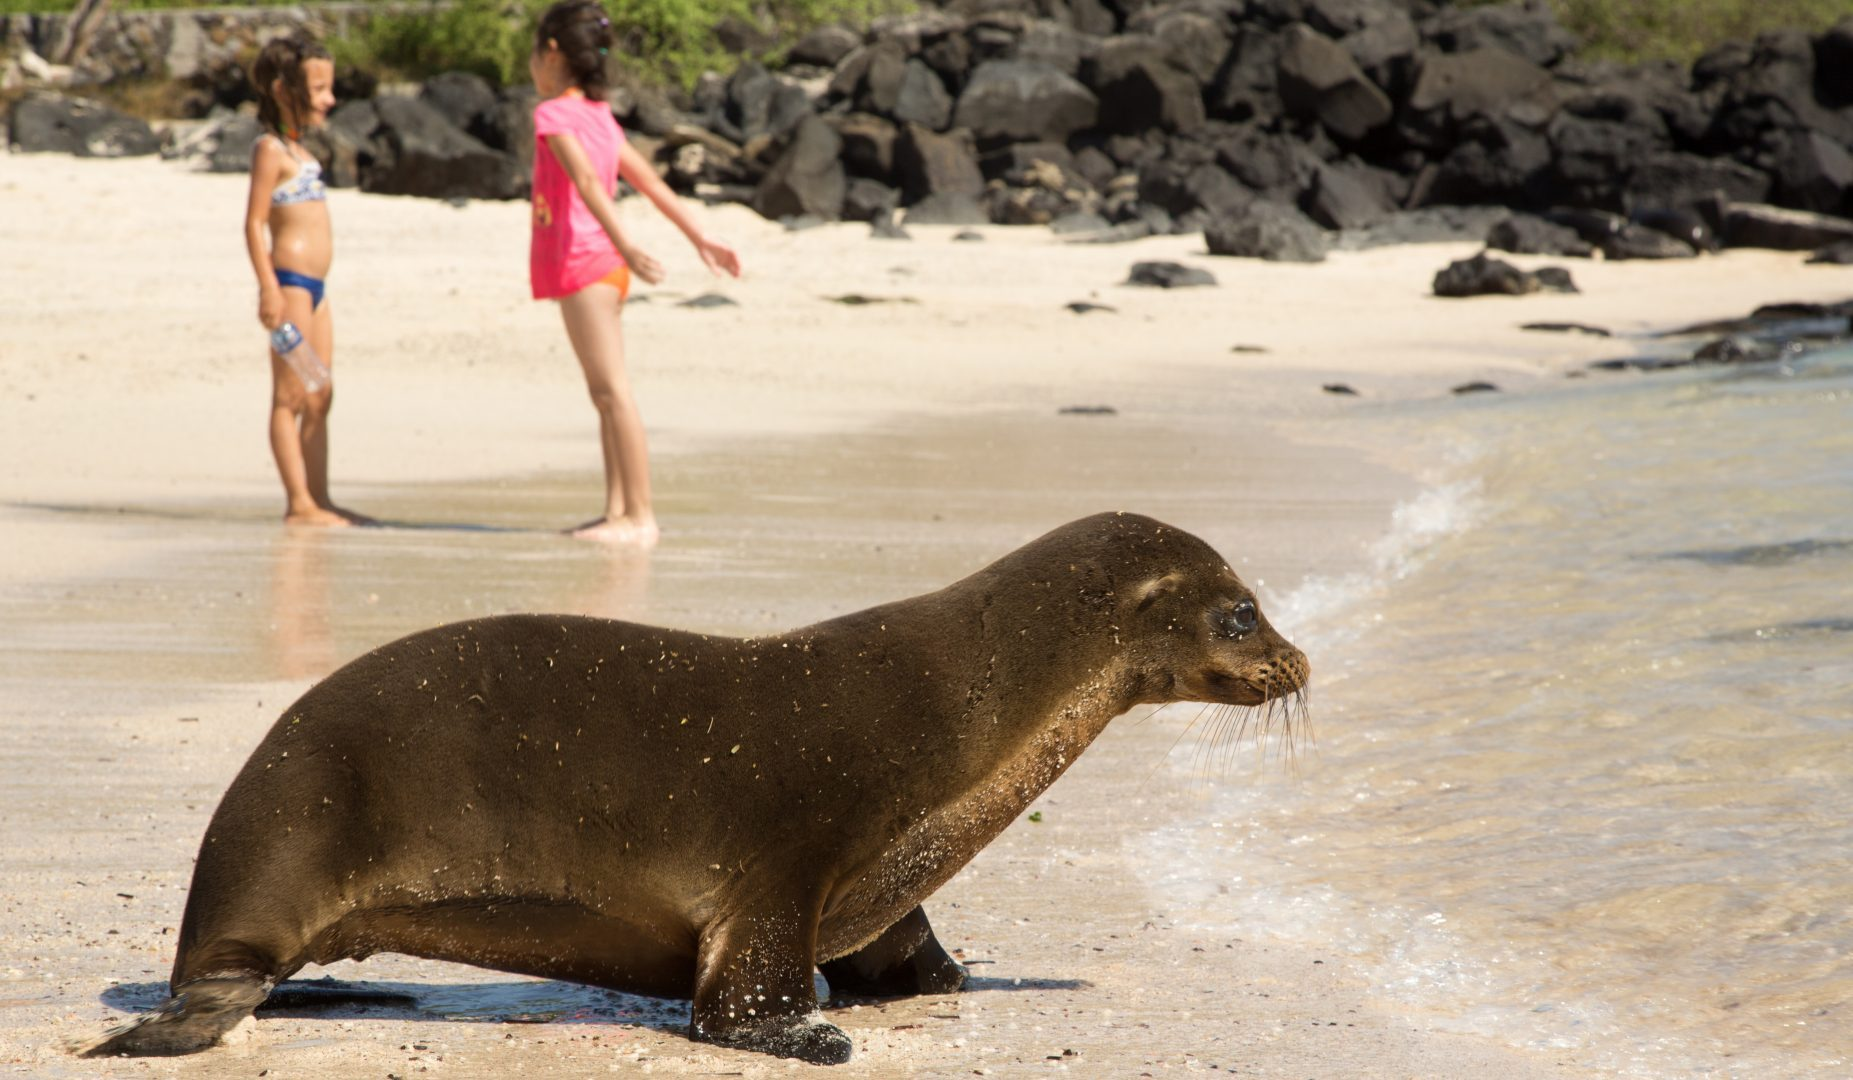 Galapagos sea lion with child